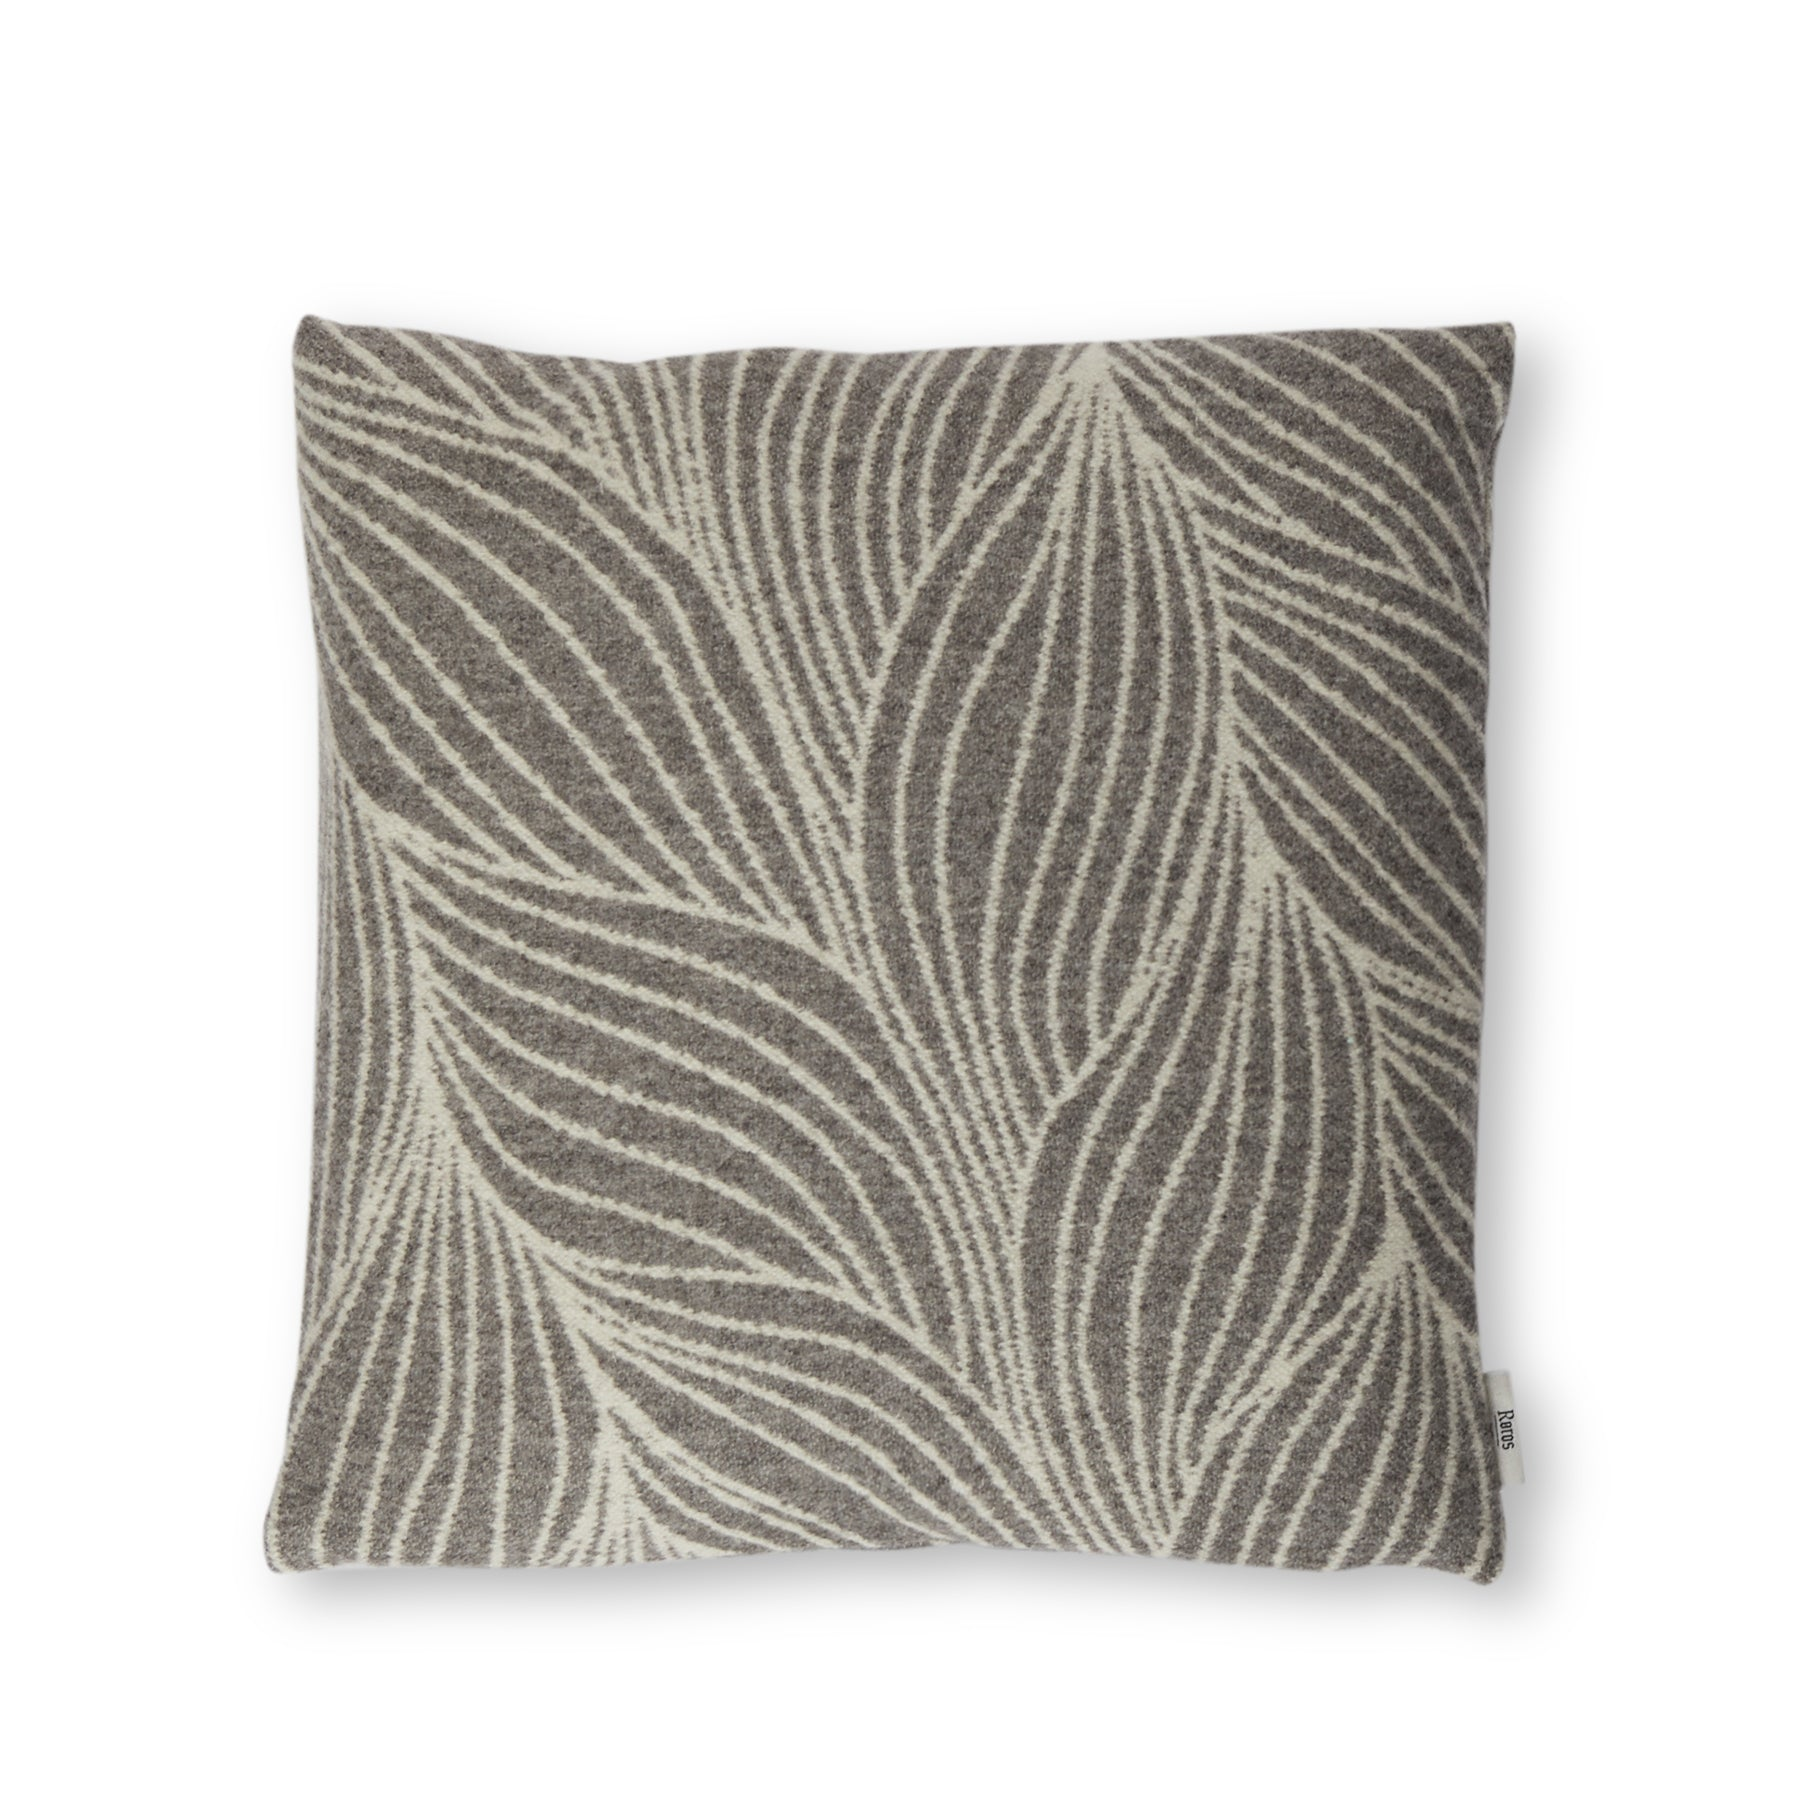 Flette Pillow in Grey Zoom Image 1